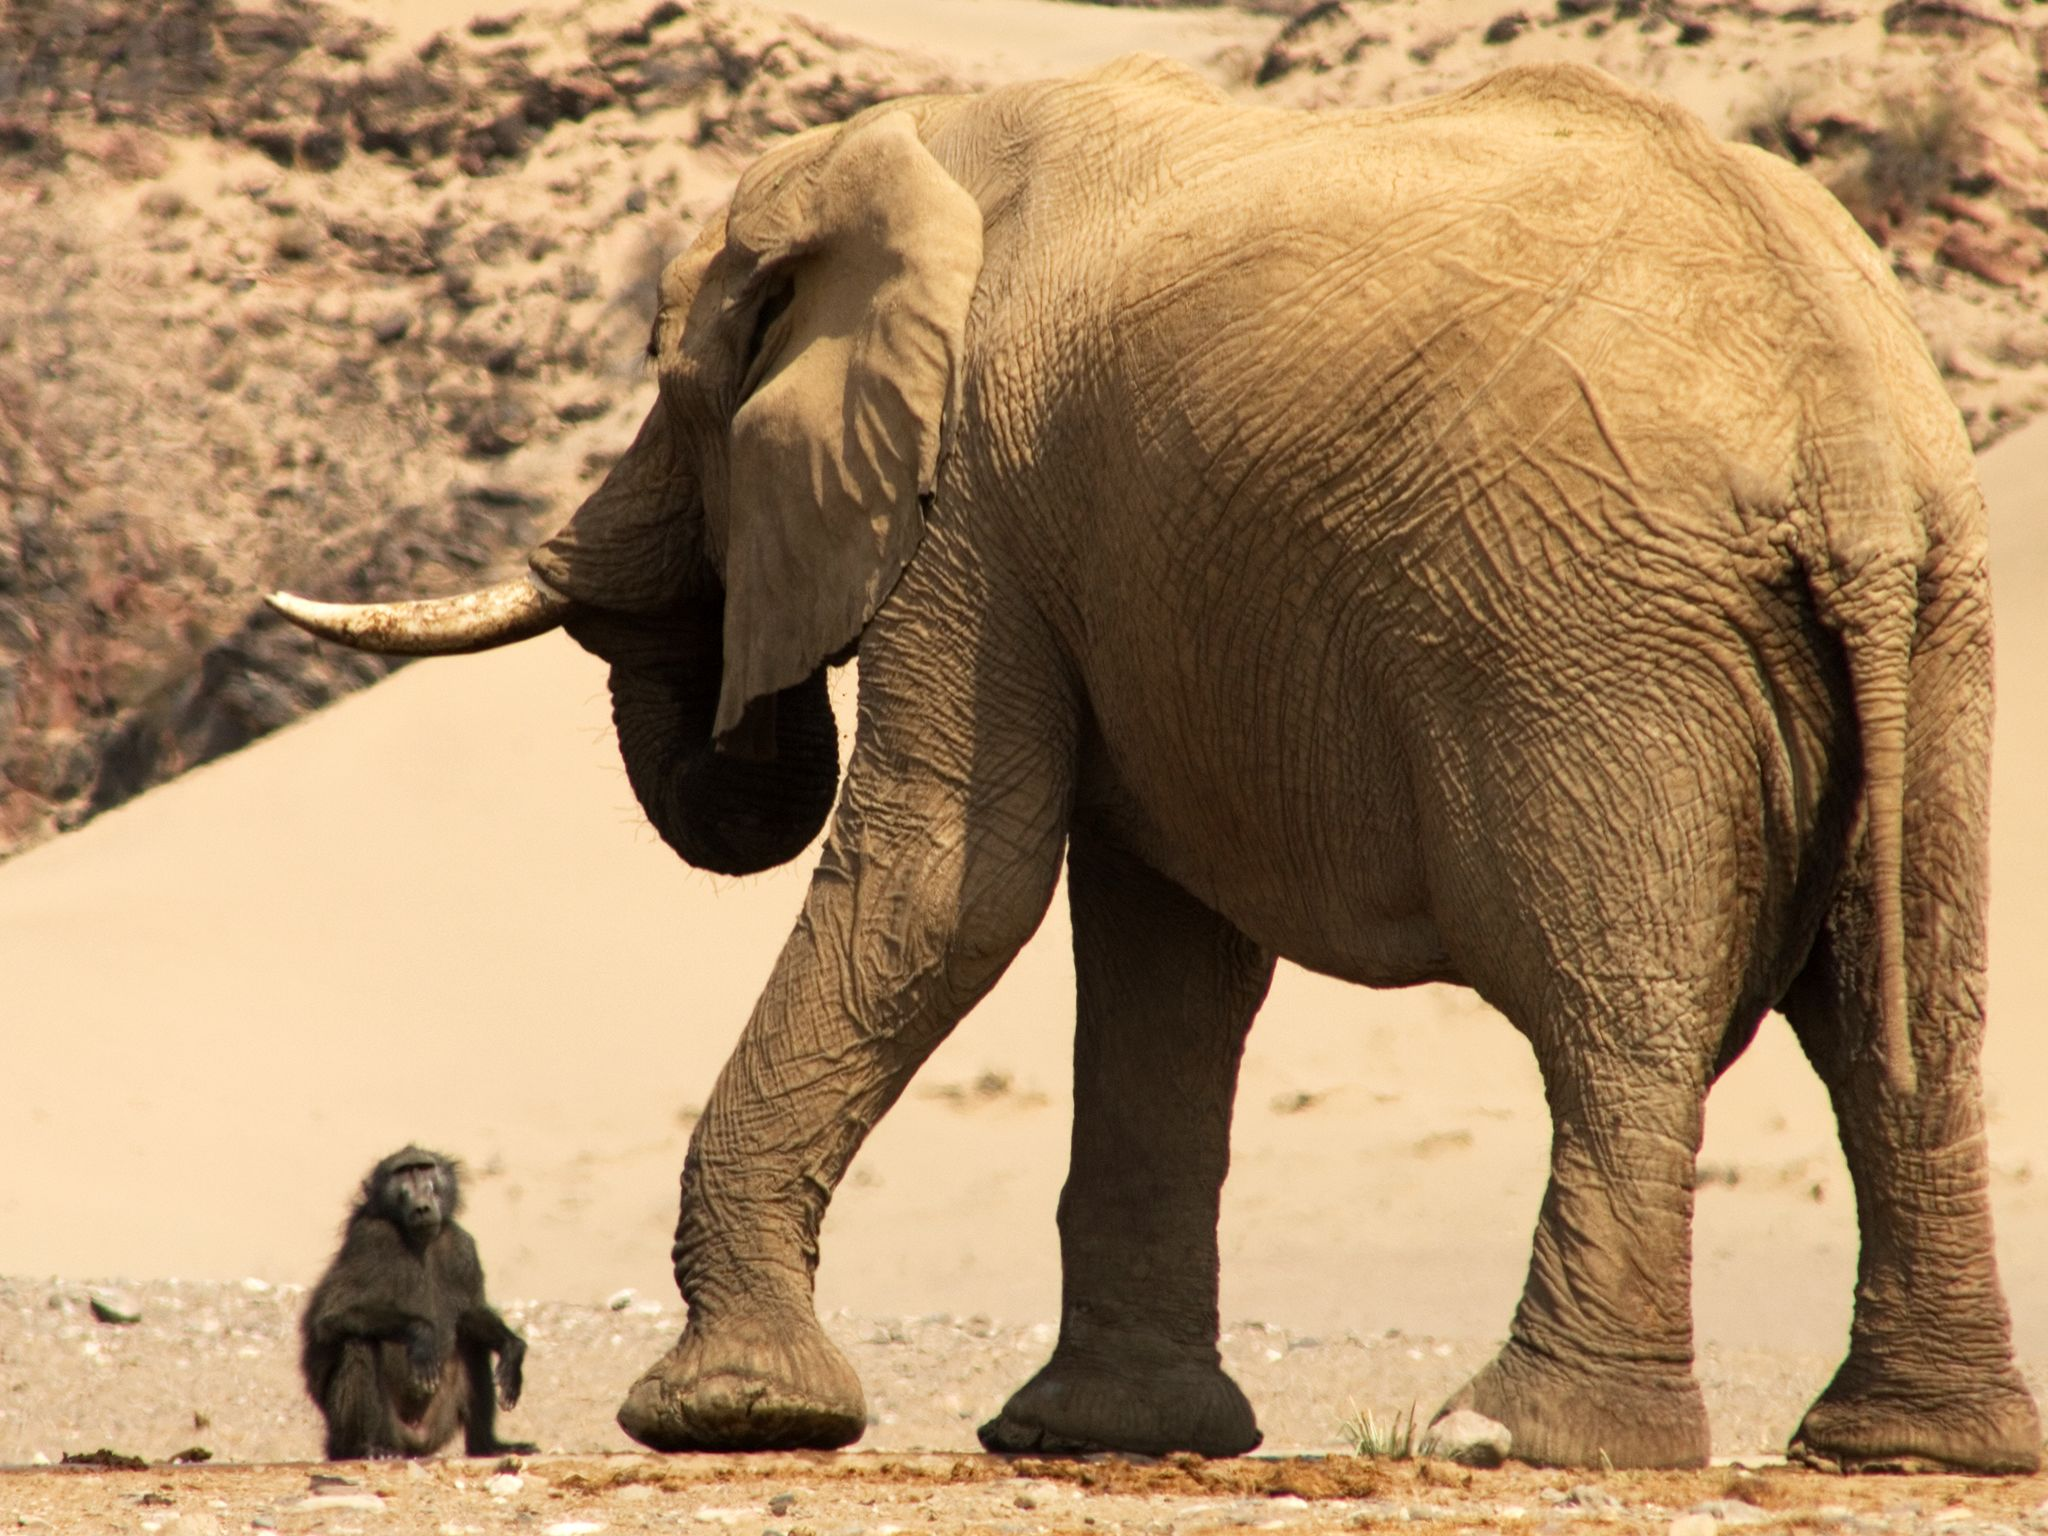 Elephant standing with baboon sitting on ground close by. This image is from Wild Namibia. [Photo of the day - September 2014]